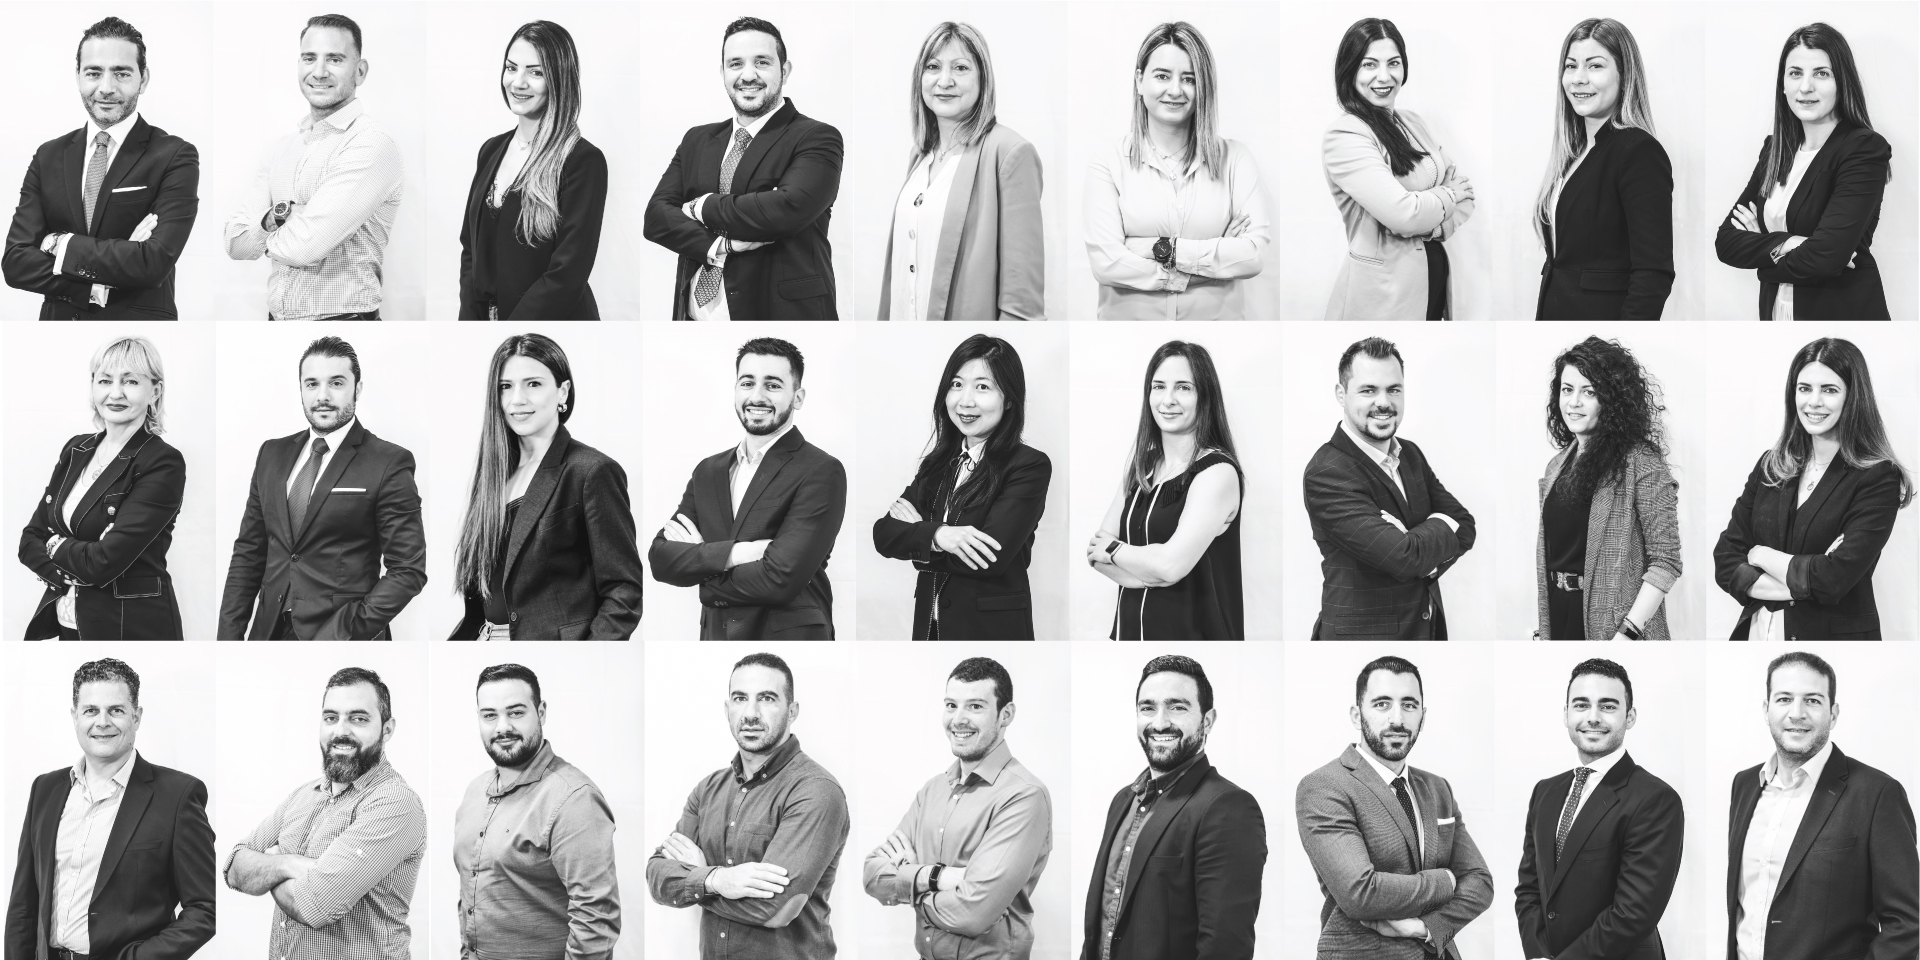 imperioproperties, limassol, meettheteam, theteam, people, team, cyprus